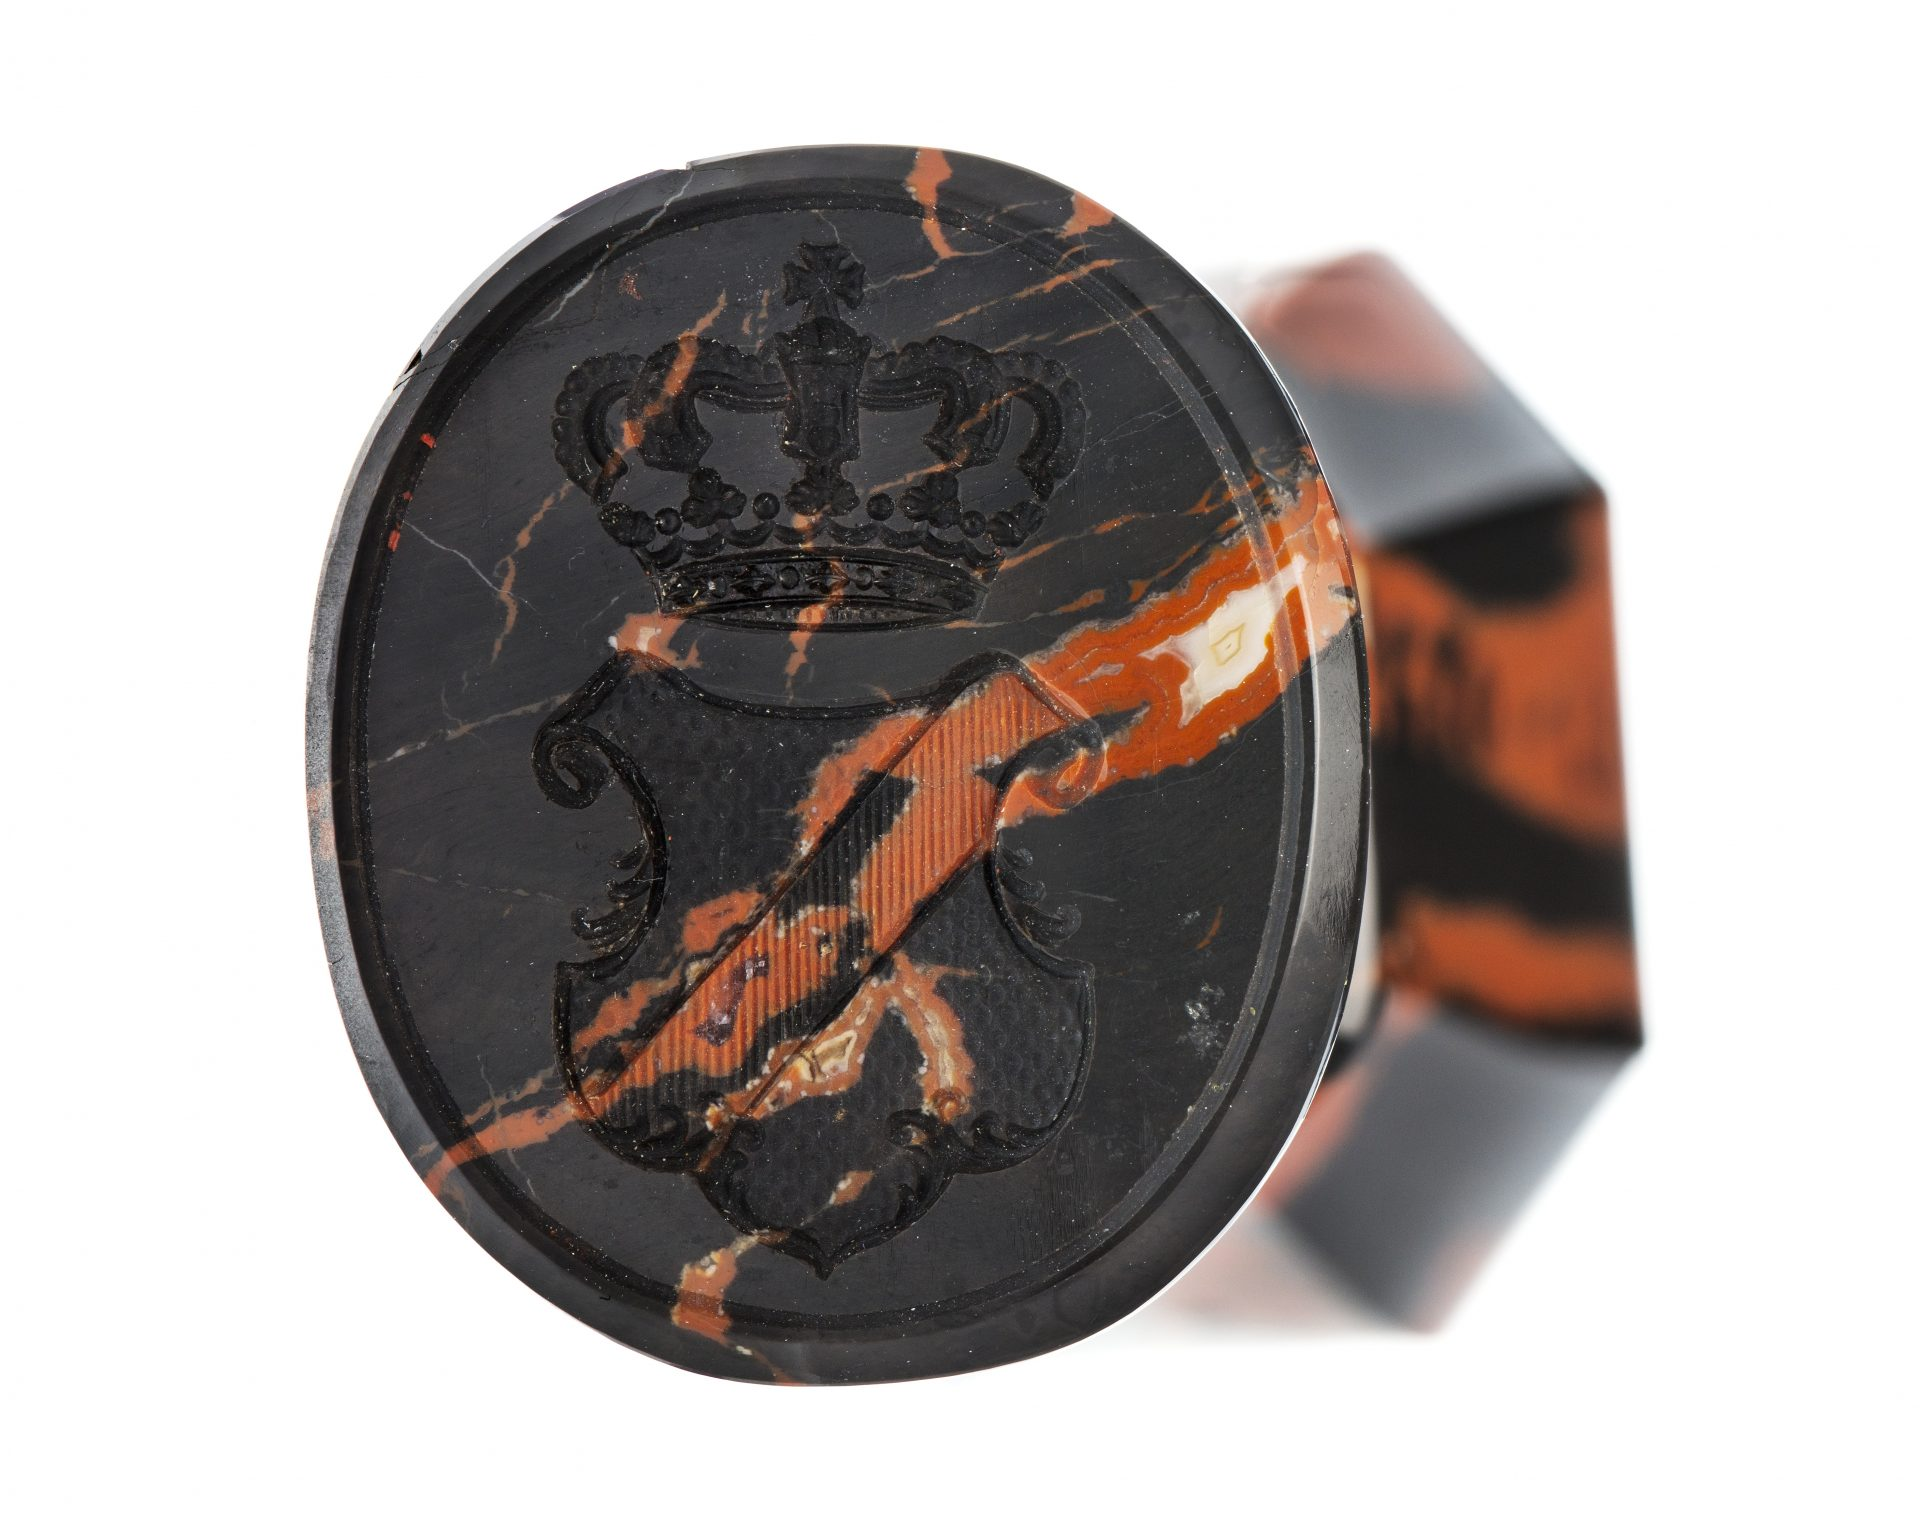 A seal of black and orange stone.